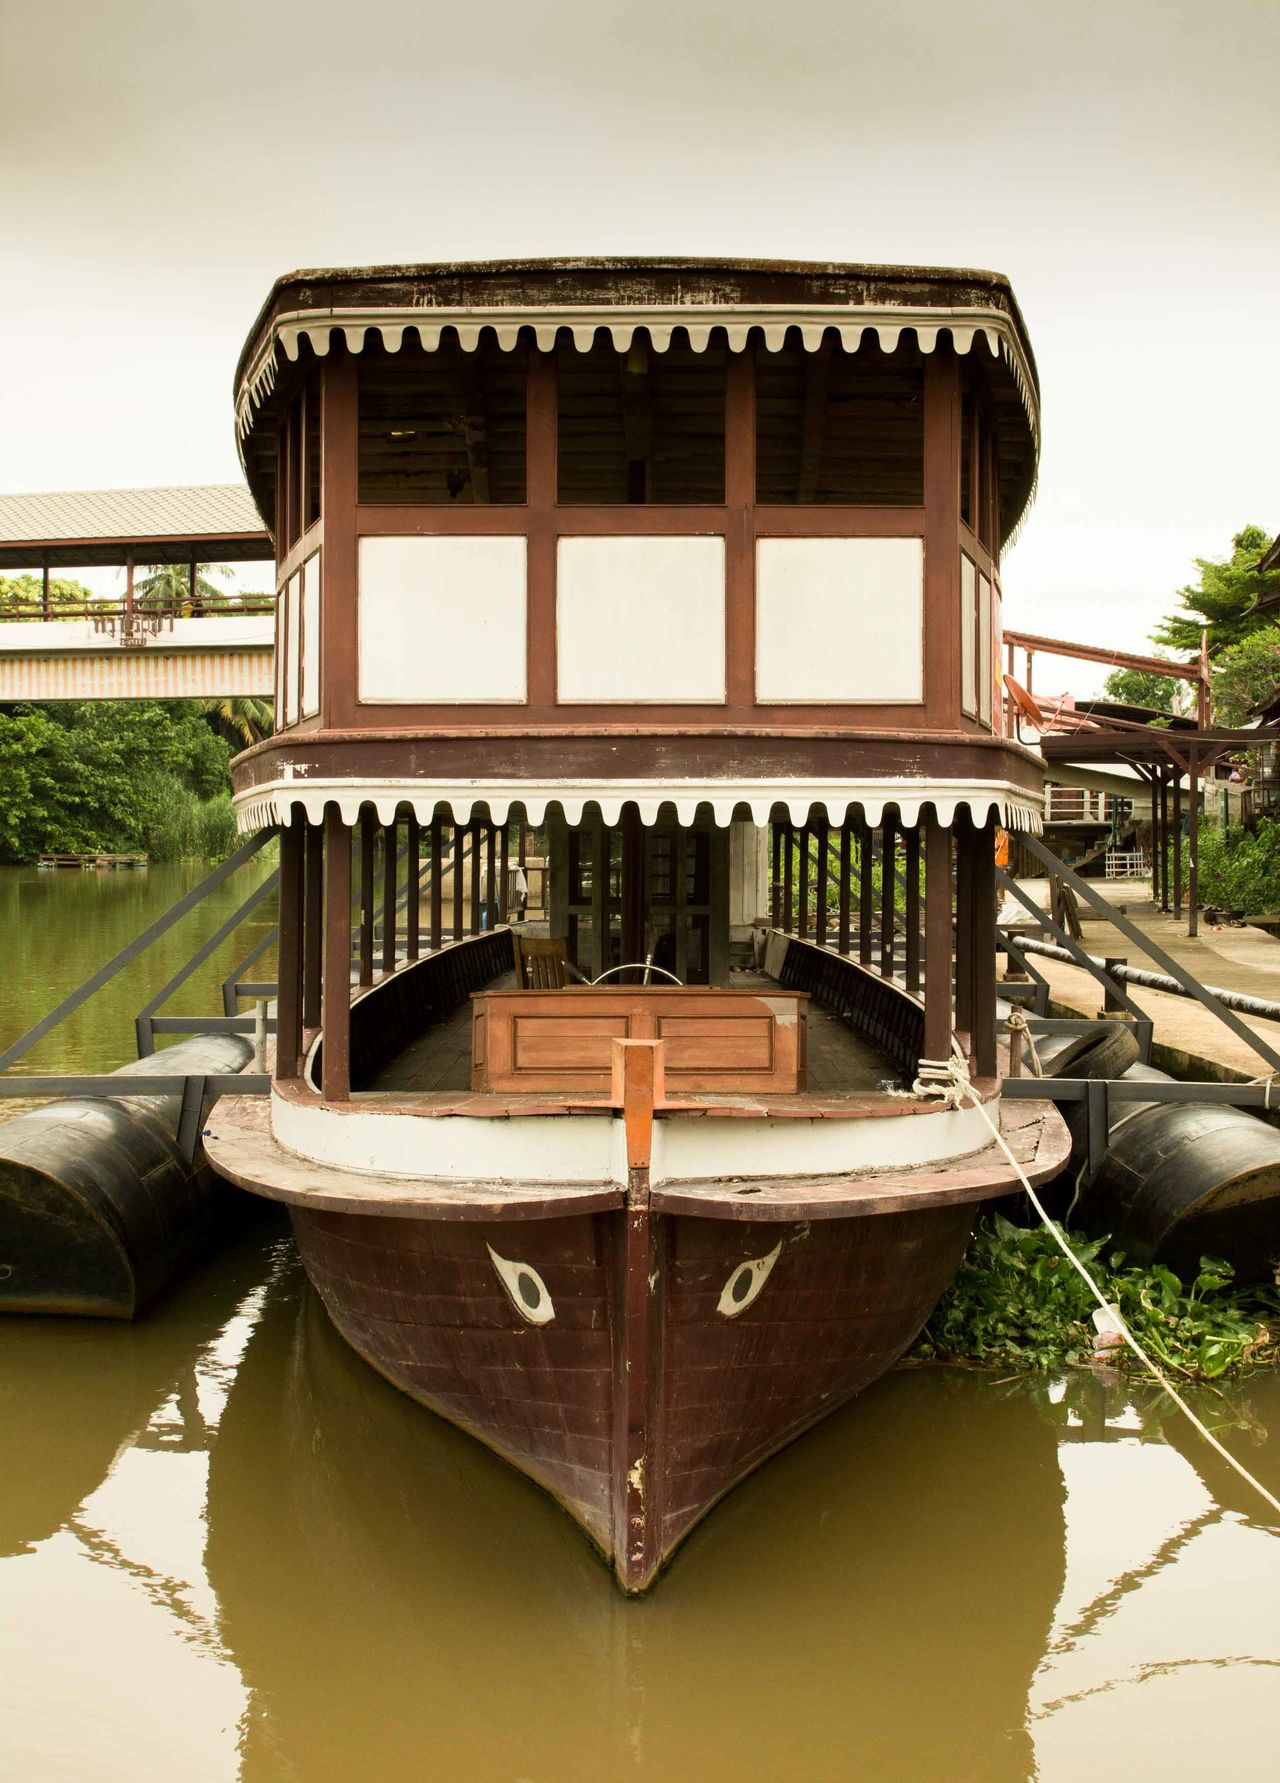 an old wooden boat is made to be a floating house in the river Architecture Boat Boat Ride Boat-house Built Structure Outdoors Thai Boat Thai Ferry Wooden Boat